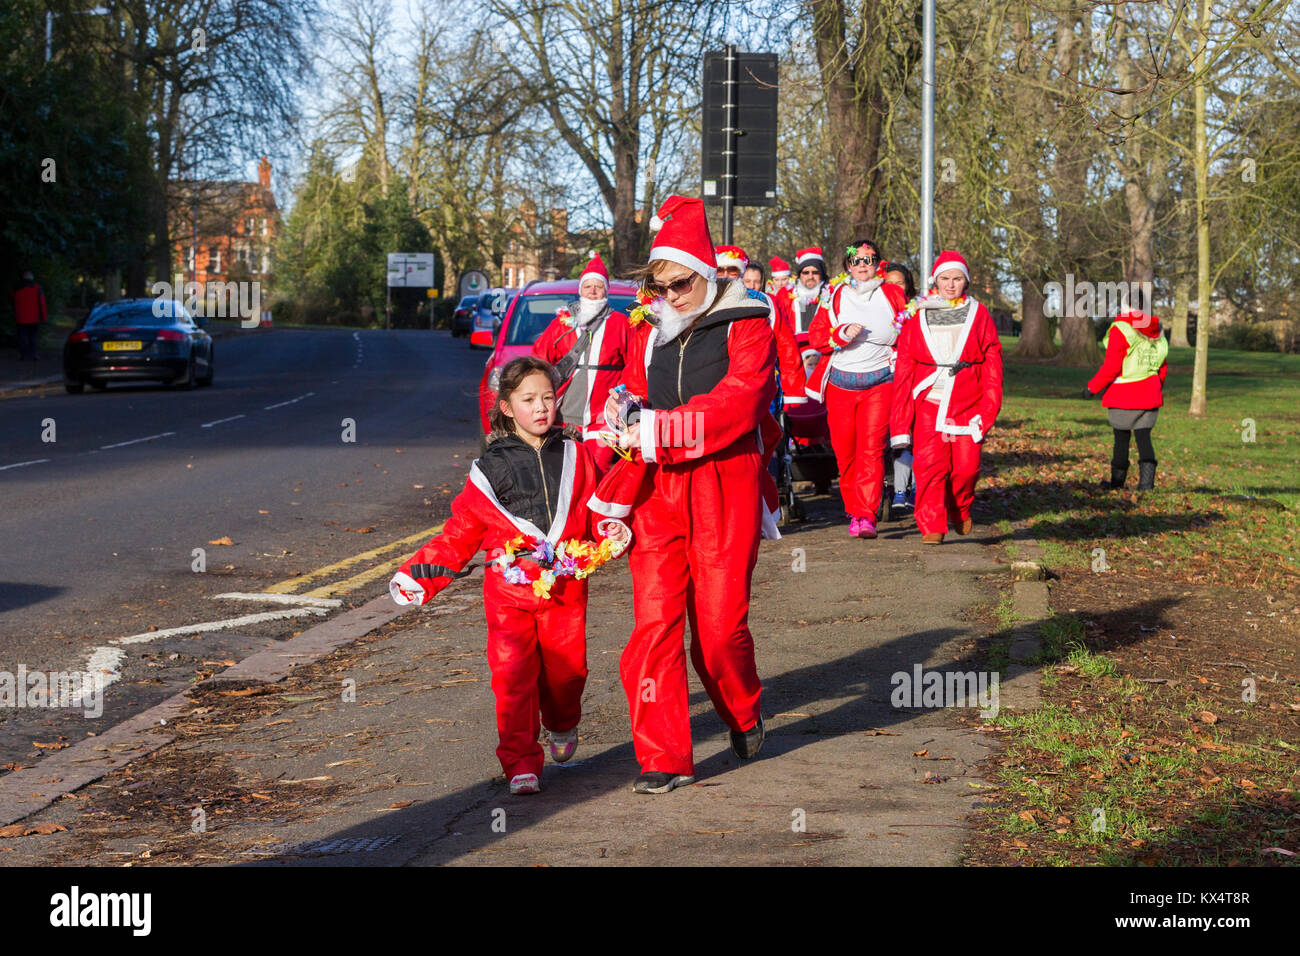 Northampton, U.K. Abington Park, 7th January 2018. A bright cold day for the rescheduled Santa Run which was supposed - Stock Image